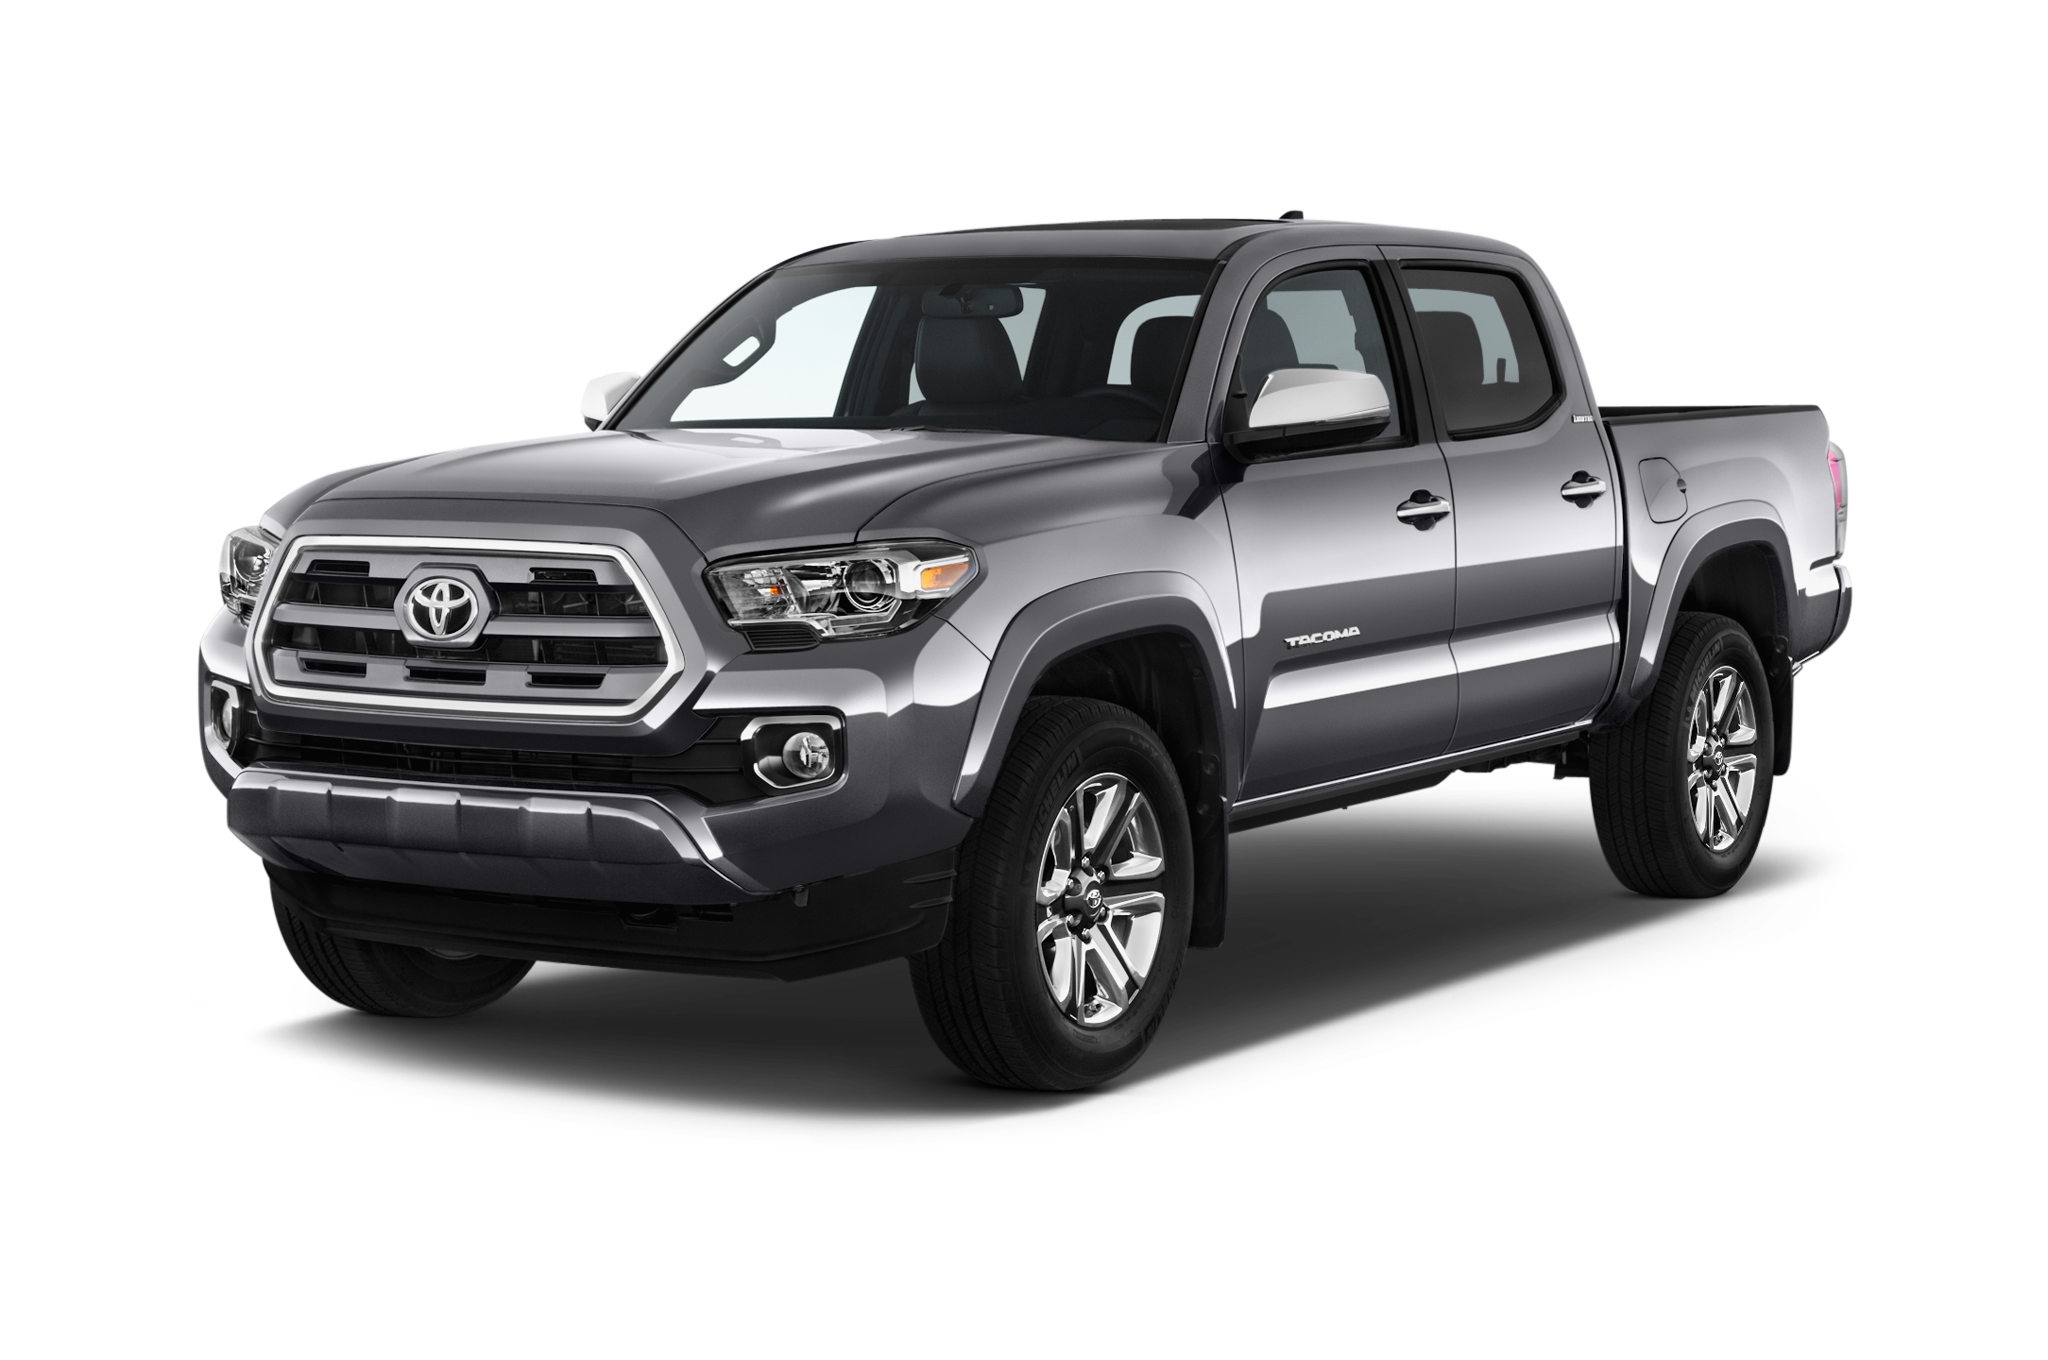 2016 toyota tacoma sr double cab 4x4 v6 auto short bed specs and features msn autos. Black Bedroom Furniture Sets. Home Design Ideas